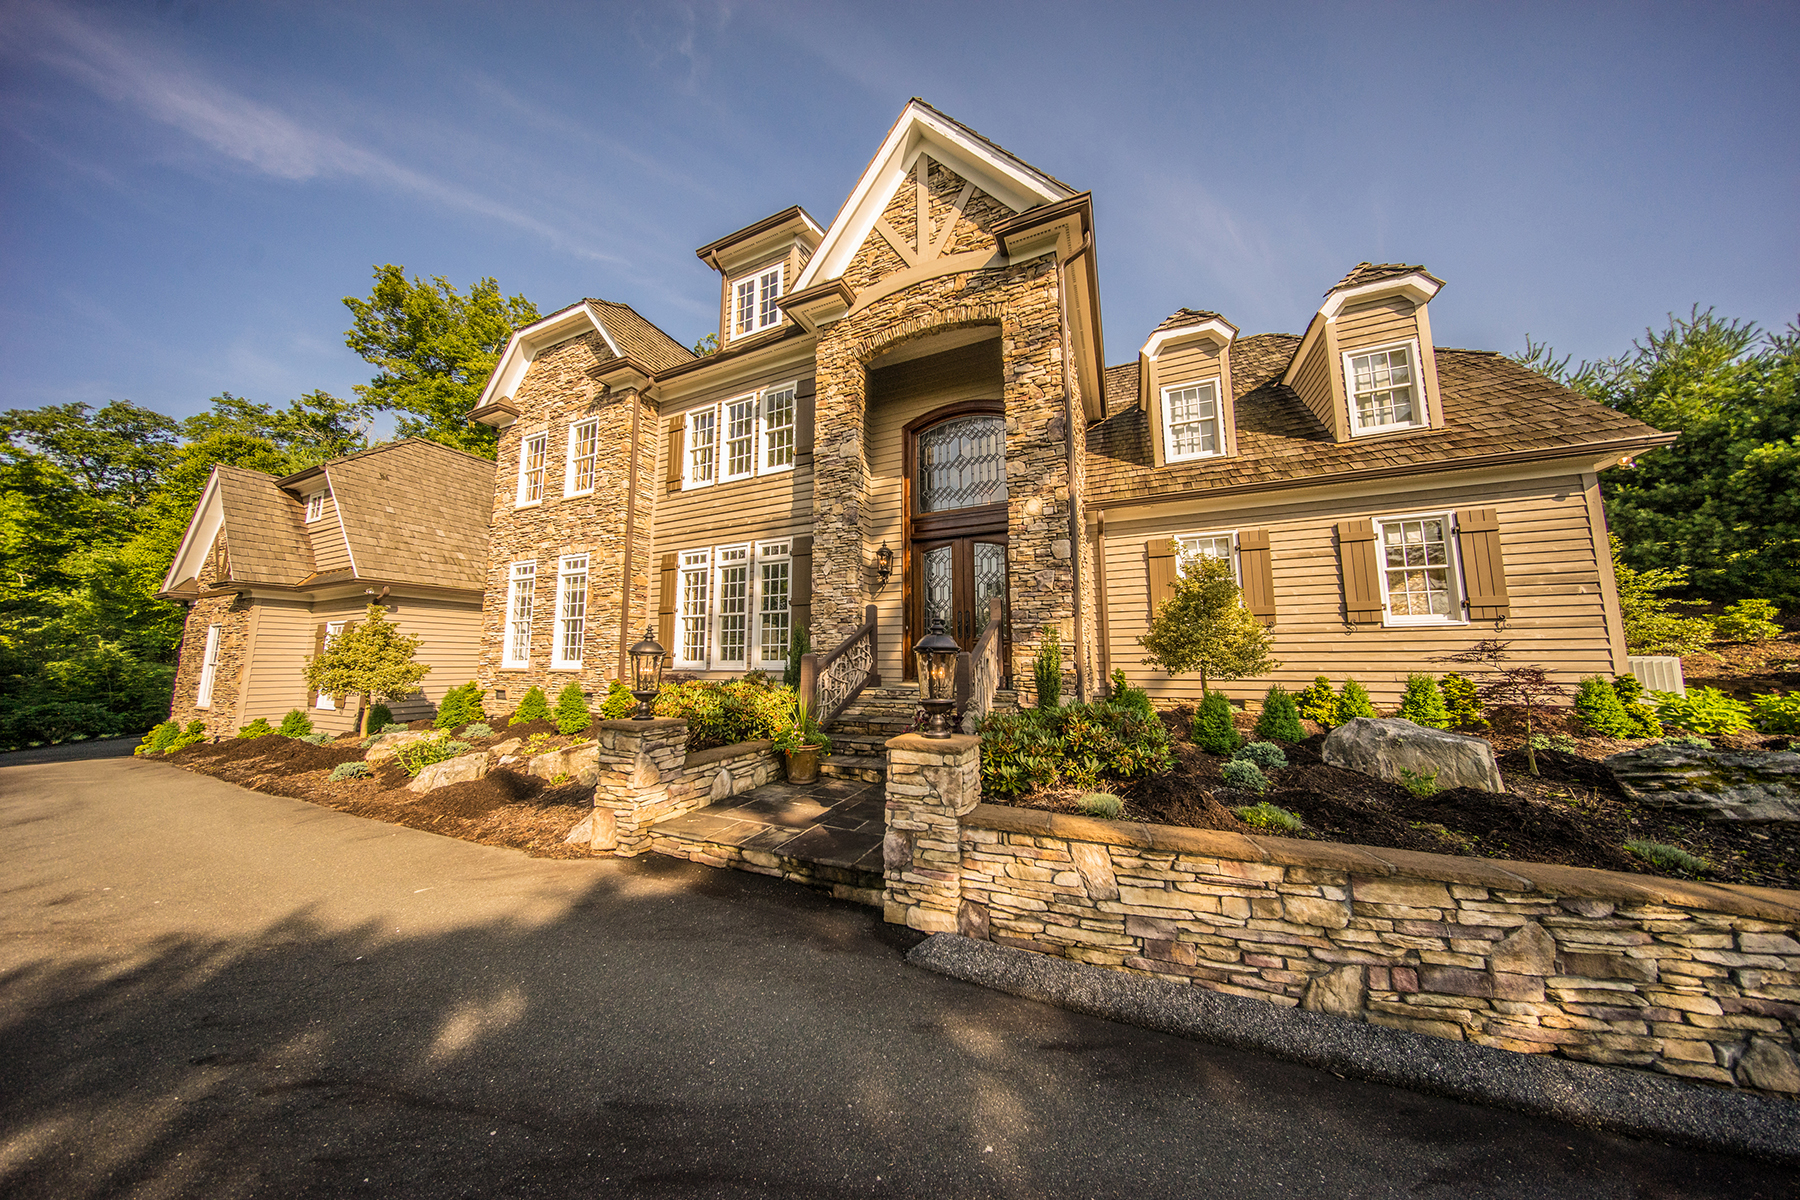 Single Family Home for Sale at BLOWING ROCK - TIMBER CREEK 303 Timber Creek Dr, Blowing Rock, North Carolina 28605 United States